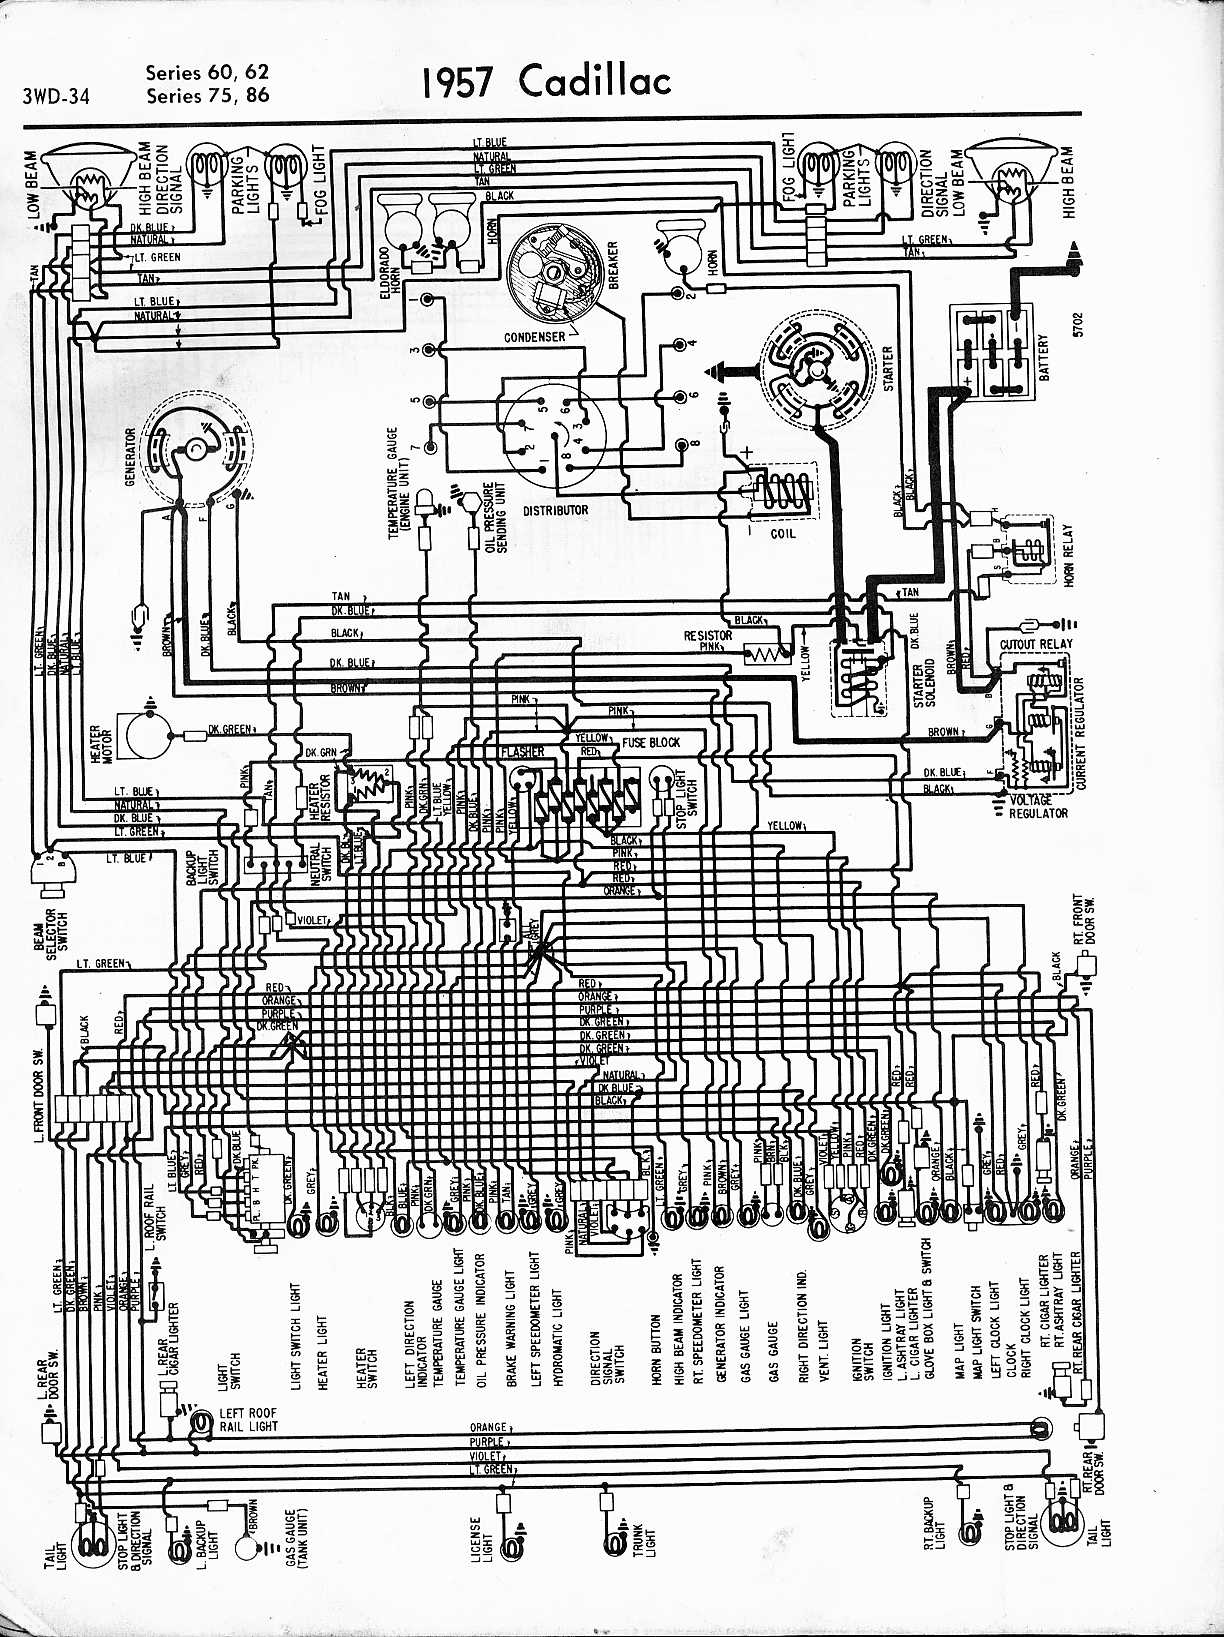 1957 cadillac wiring diagram cadillac wiring diagrams: 1957-1965 1957 vw wiring diagram #1